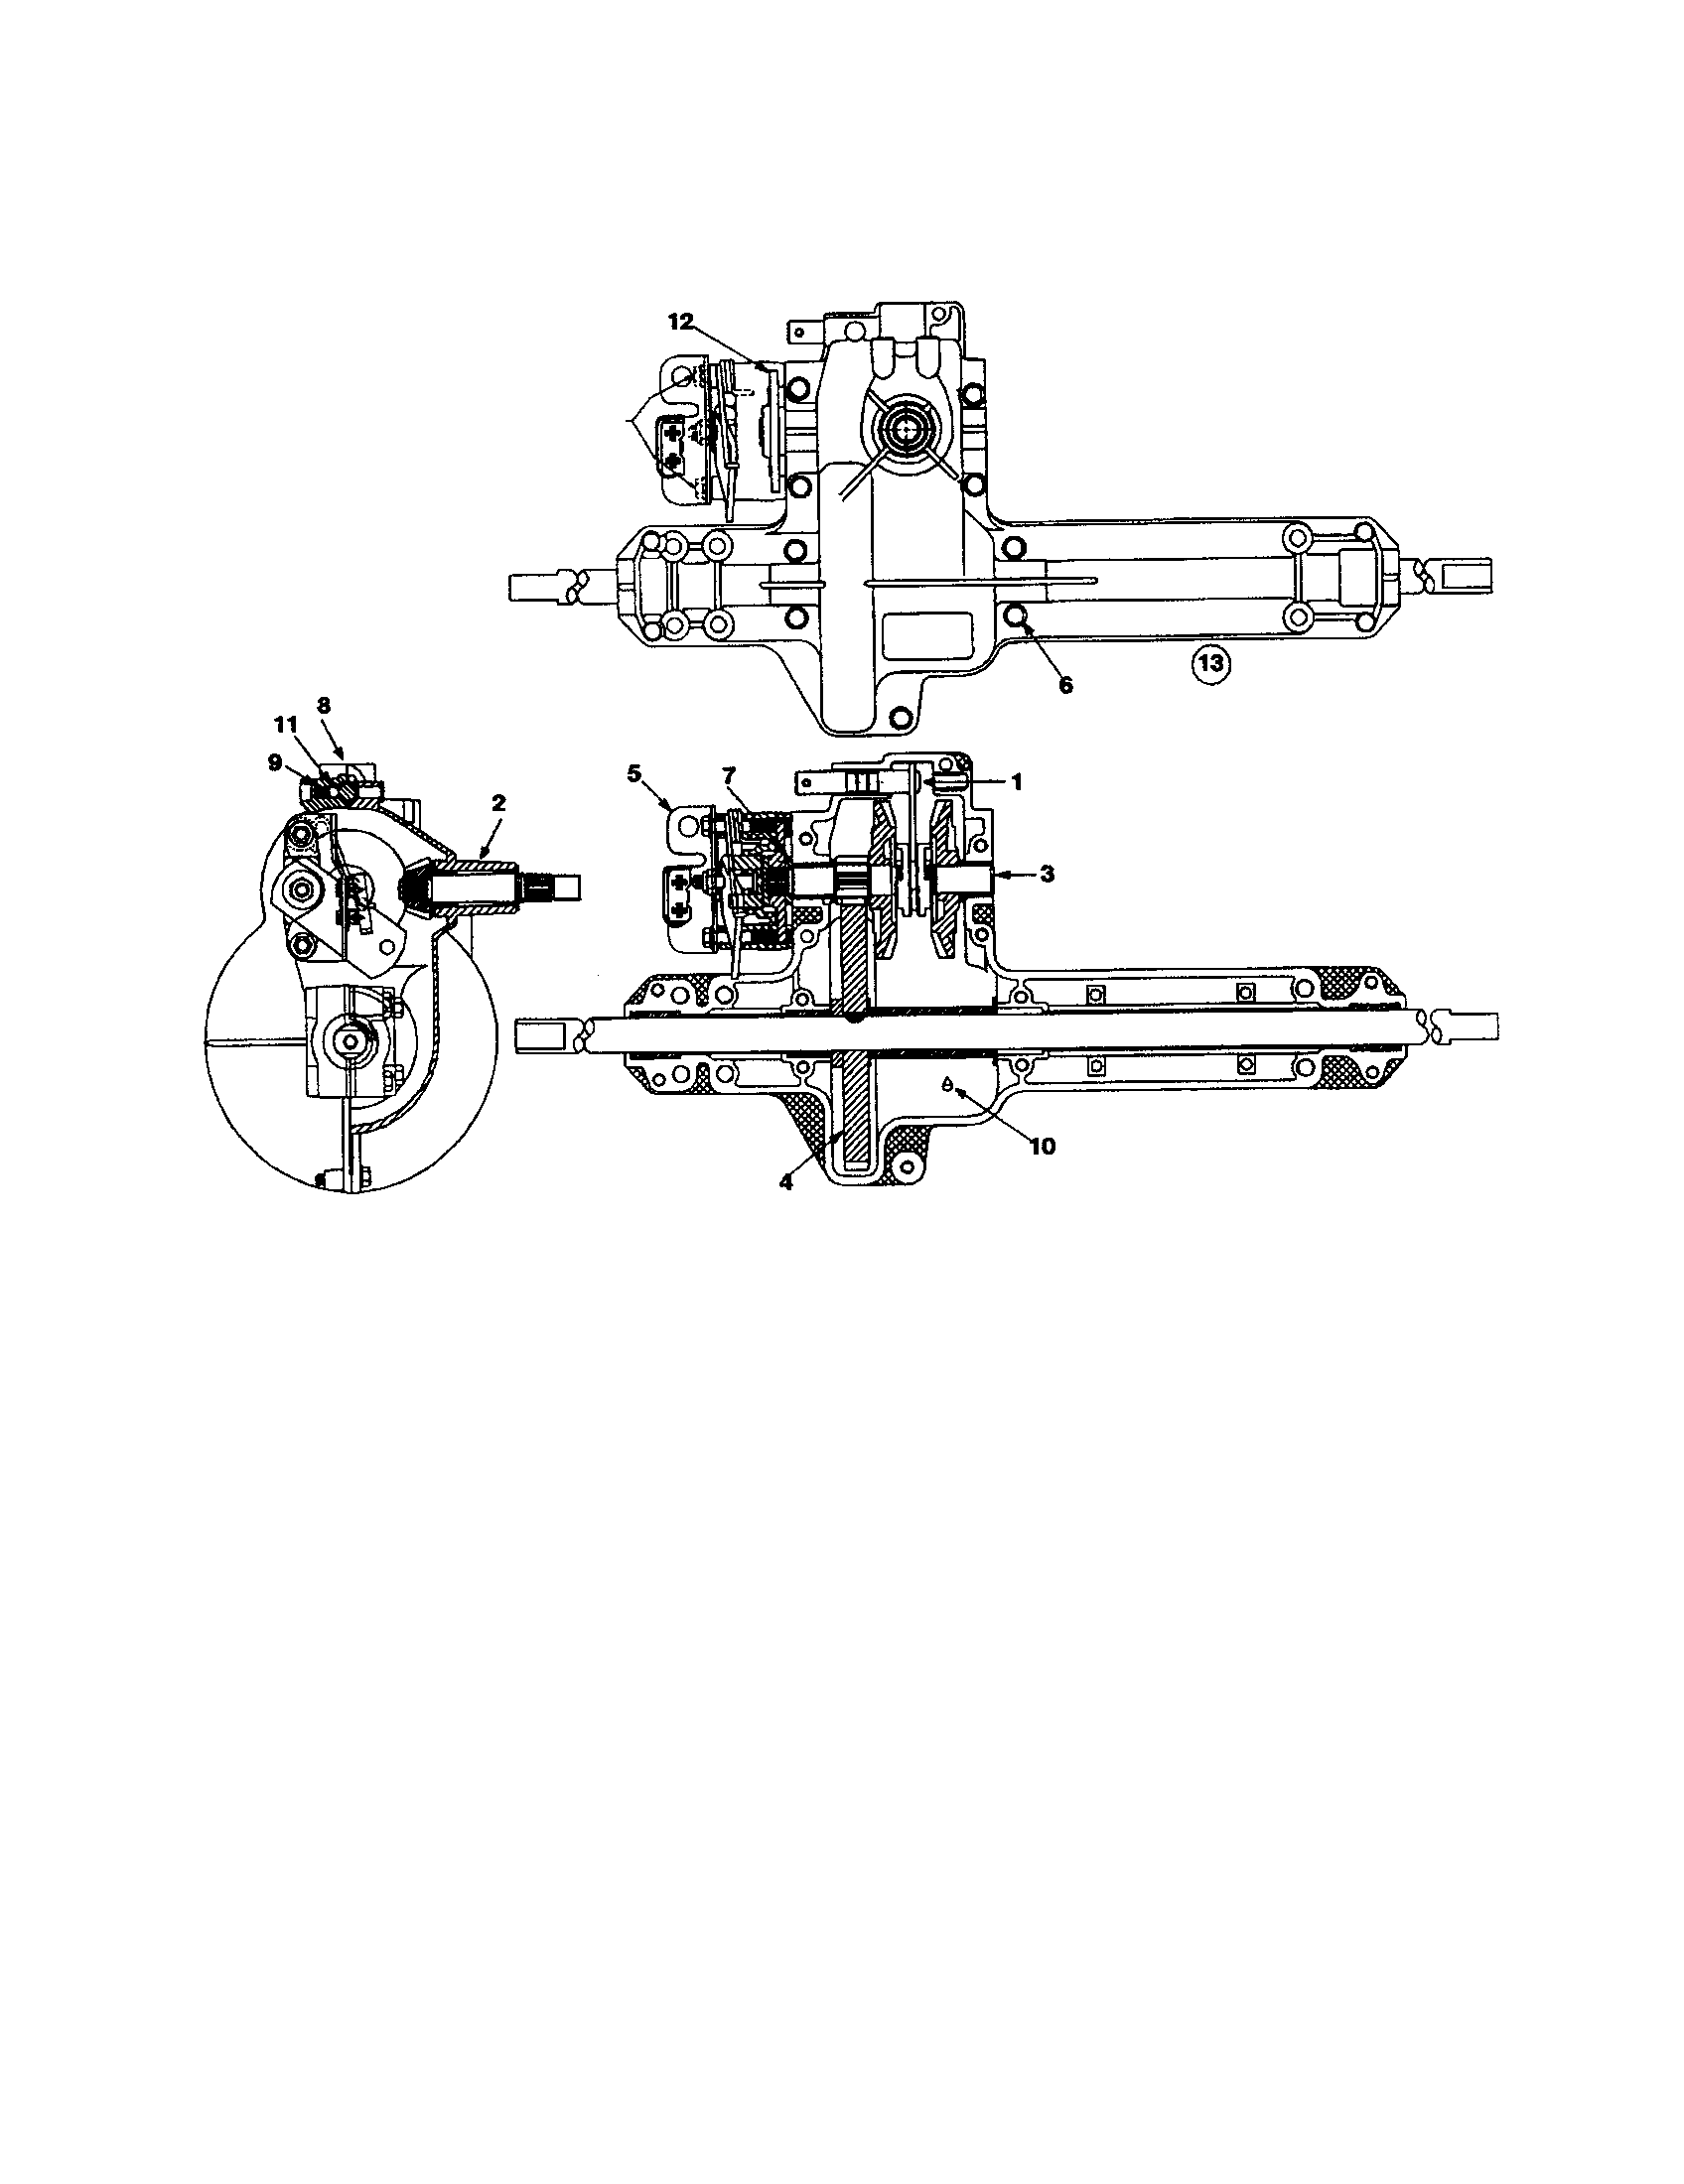 DRIVESHAFT AND HOUSING Diagram & Parts List for Model